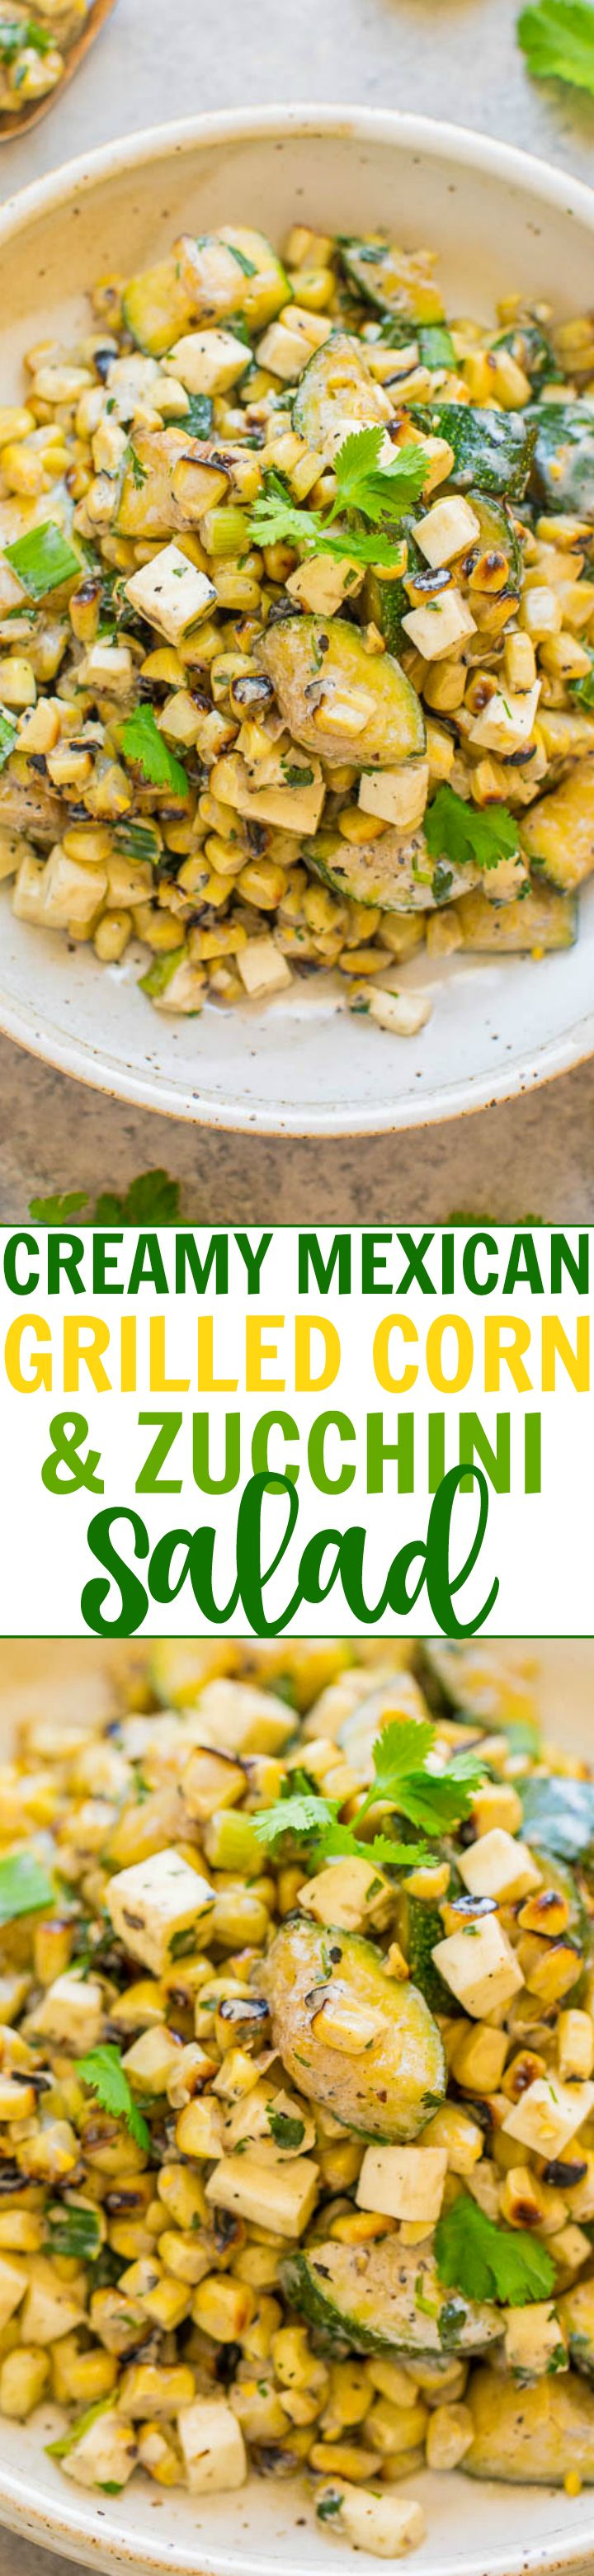 Creamy Mexican Grilled Corn and Zucchini Salad